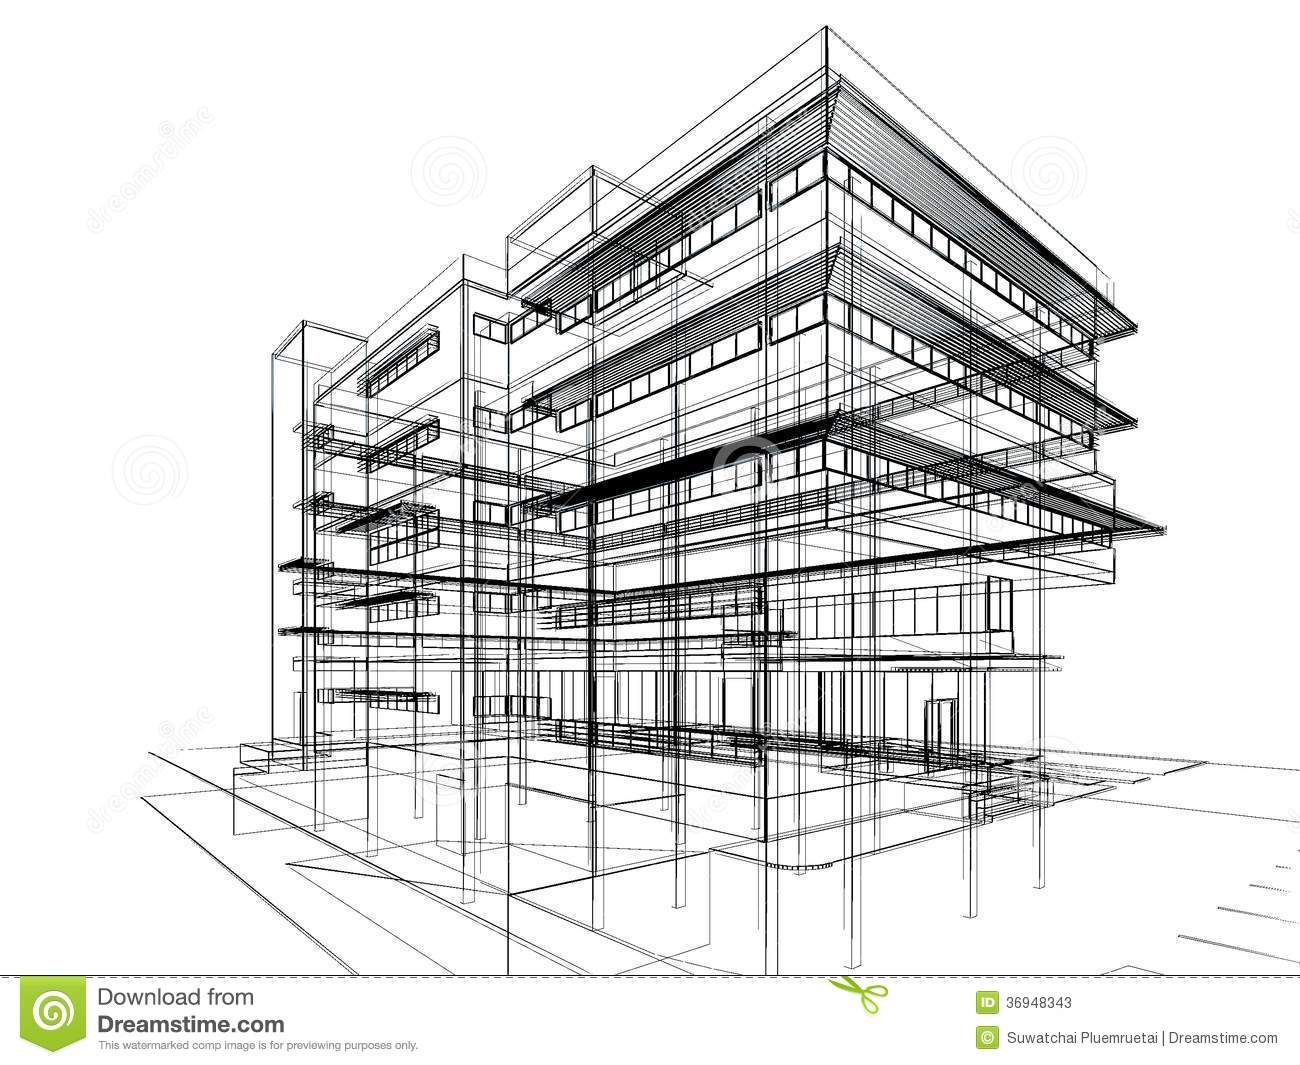 How To Read Architectural Plans Sketch Design Of Building Stock Photos Image 36948343